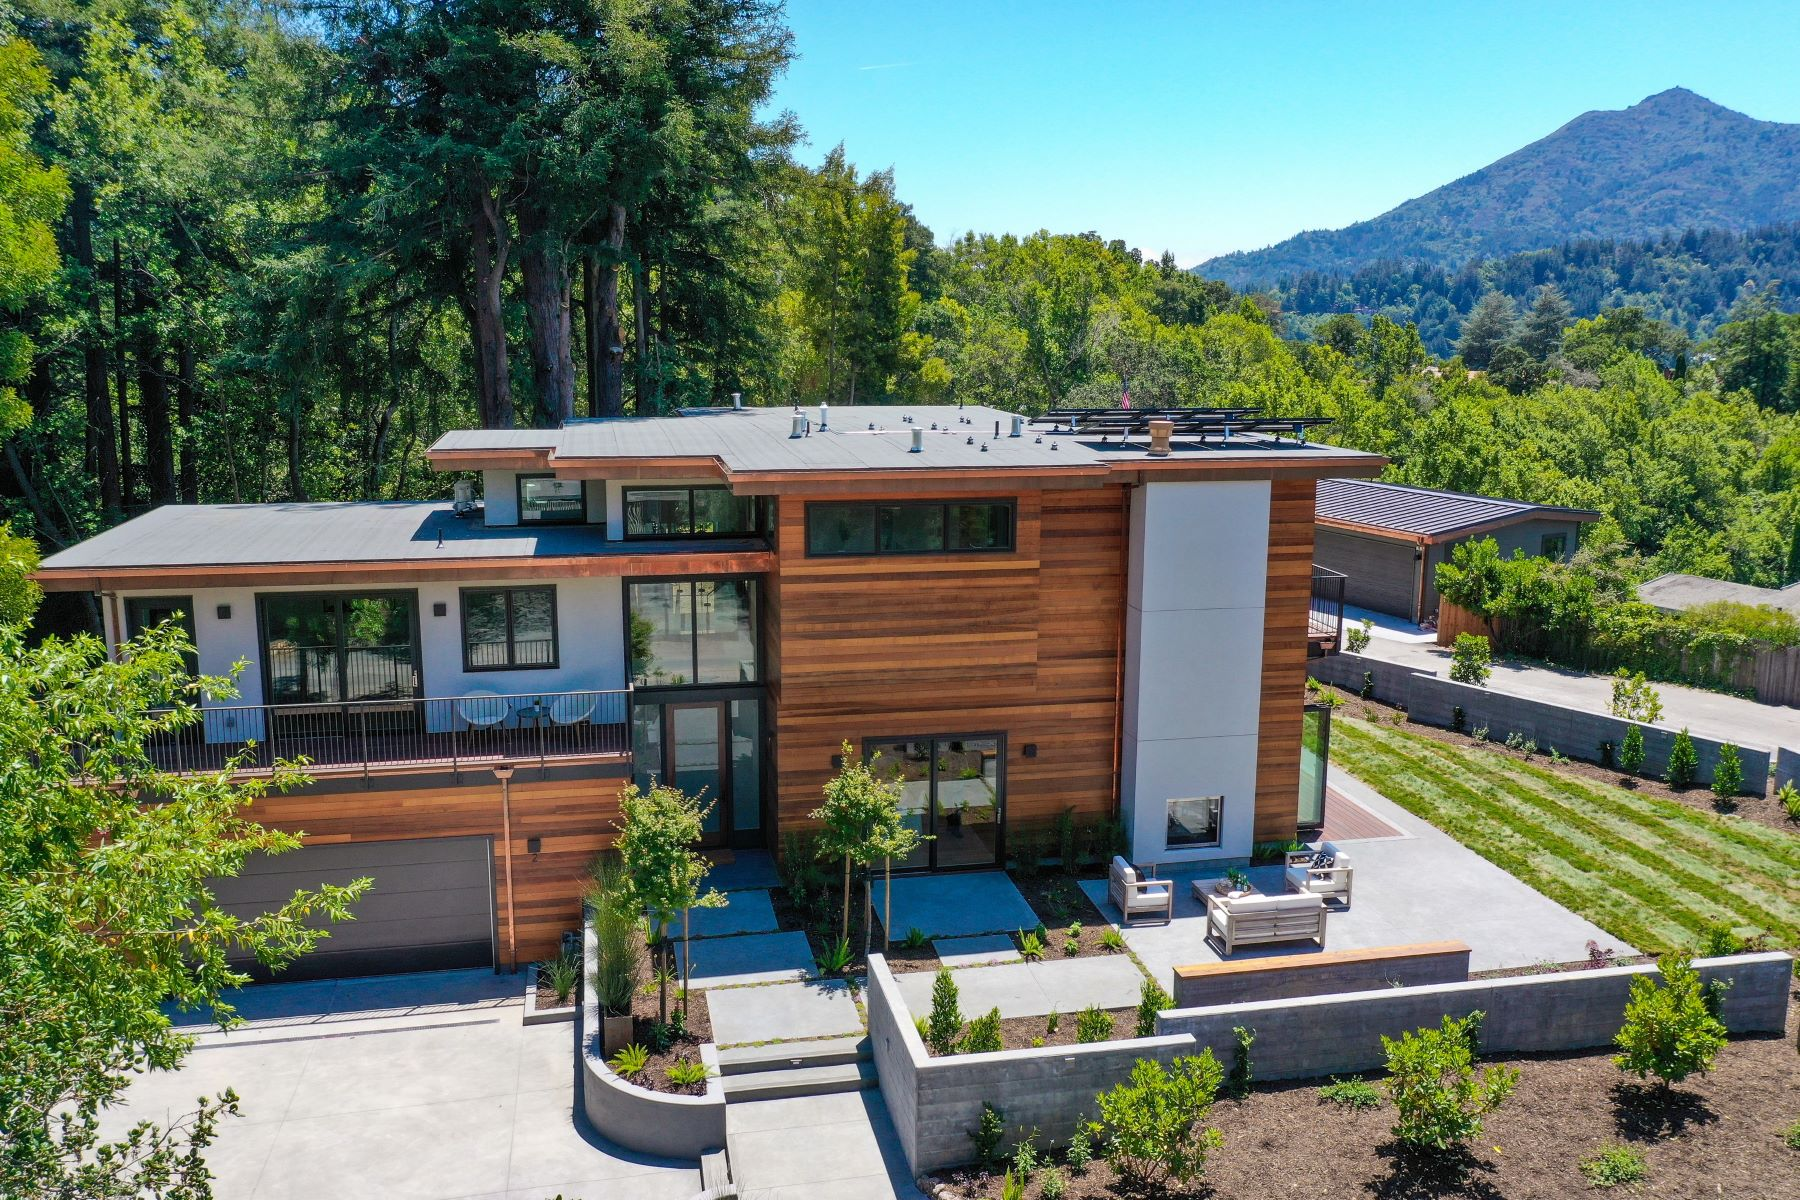 Single Family Homes for Sale at Just Built Modern View home with studio unit on .43 acre lot in Ross! 2 Crest Road Ross, California 94957 United States